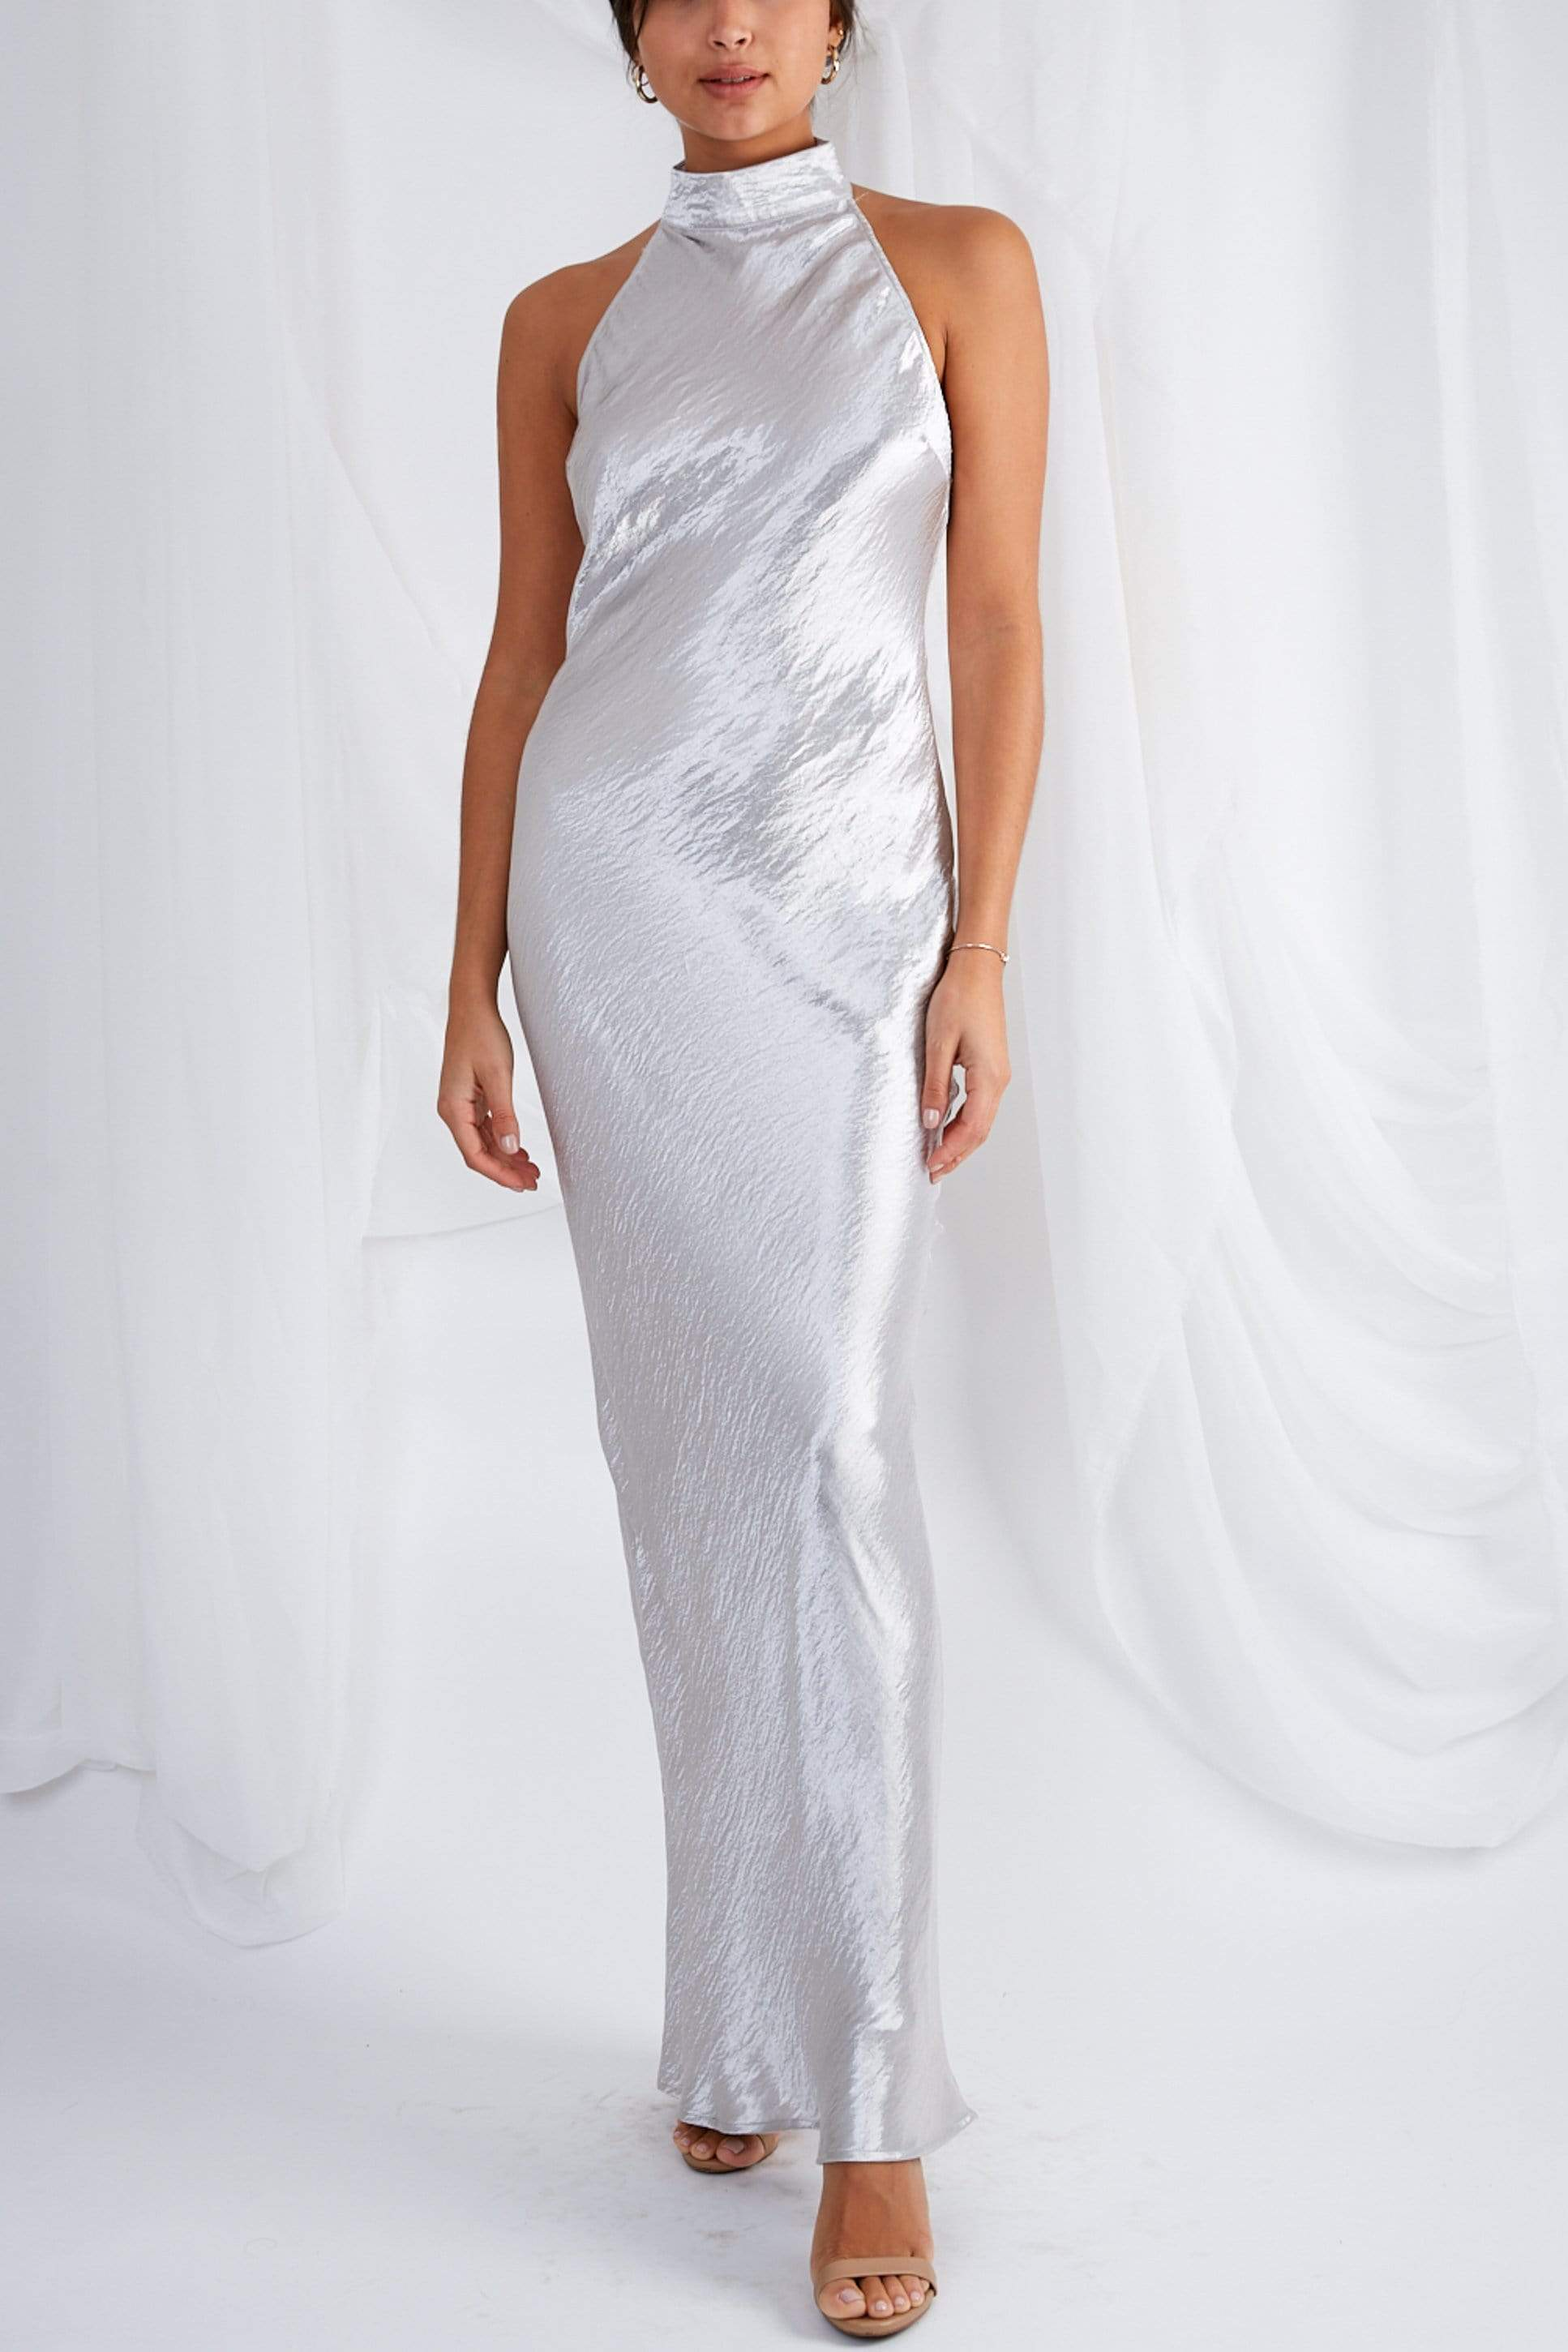 Raleigh Halterneck Maxi Dress - Liquid Silver, dress - Pretty Lavish